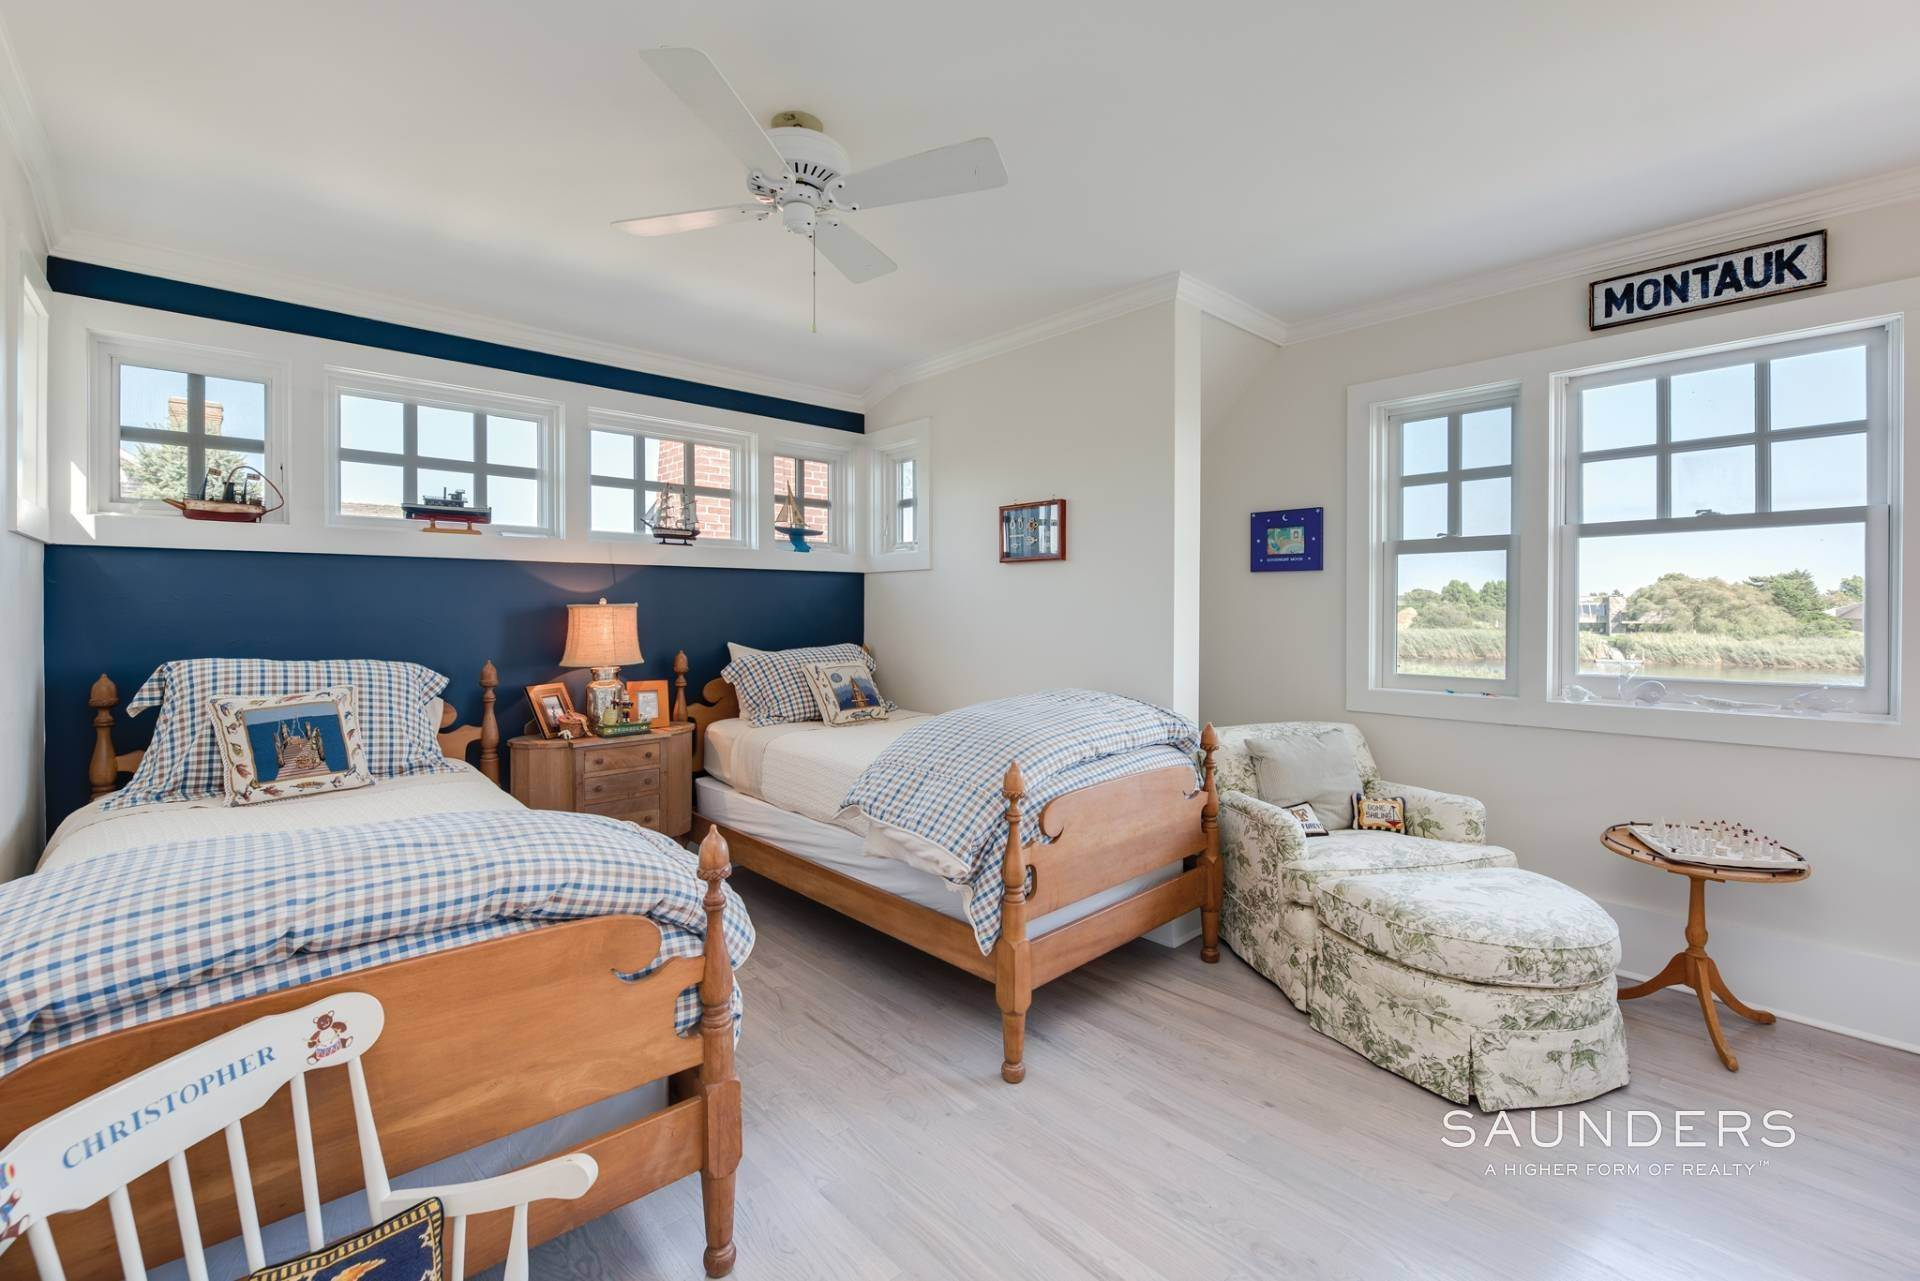 17. Single Family Homes for Sale at Bridgehampton South Waterfront With Dock & Ocean View 87 Rose Way, Bridgehampton, Southampton Town, NY 11932